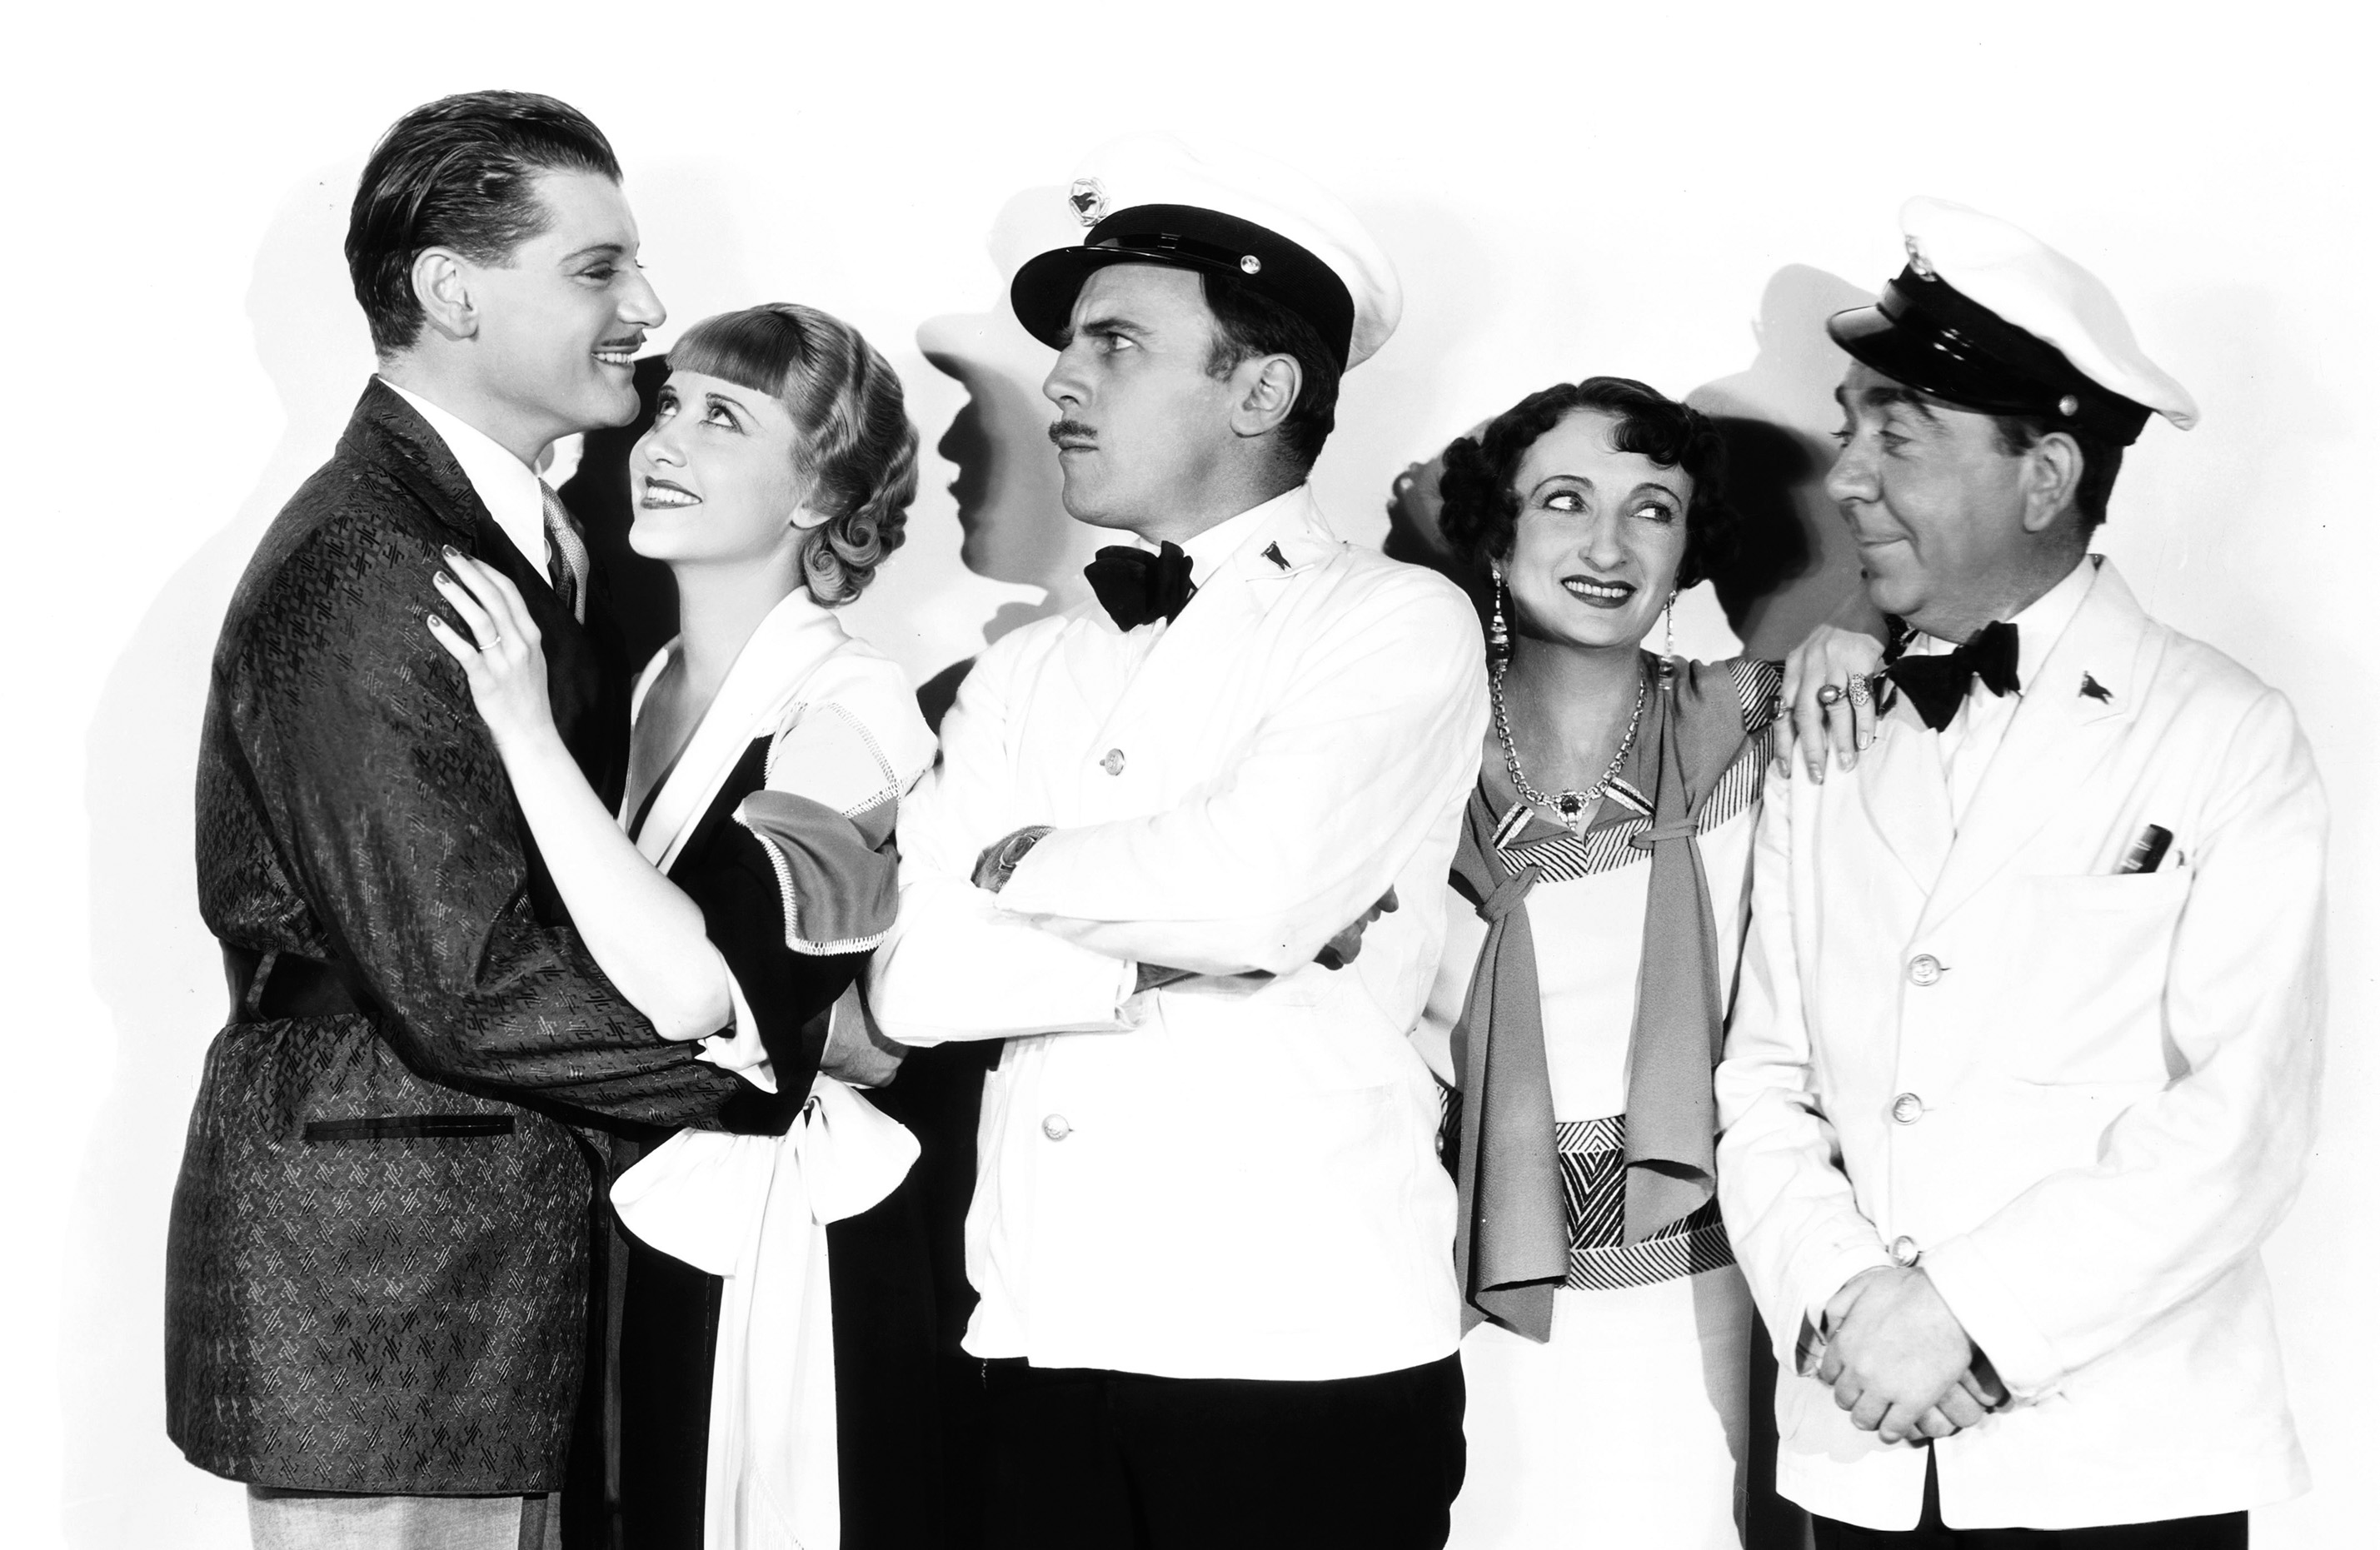 Ralph Forbes, Herbert Mundin, Una O'Connor, Genevieve Tobin, and Roland Young in Pleasure Cruise (1933)